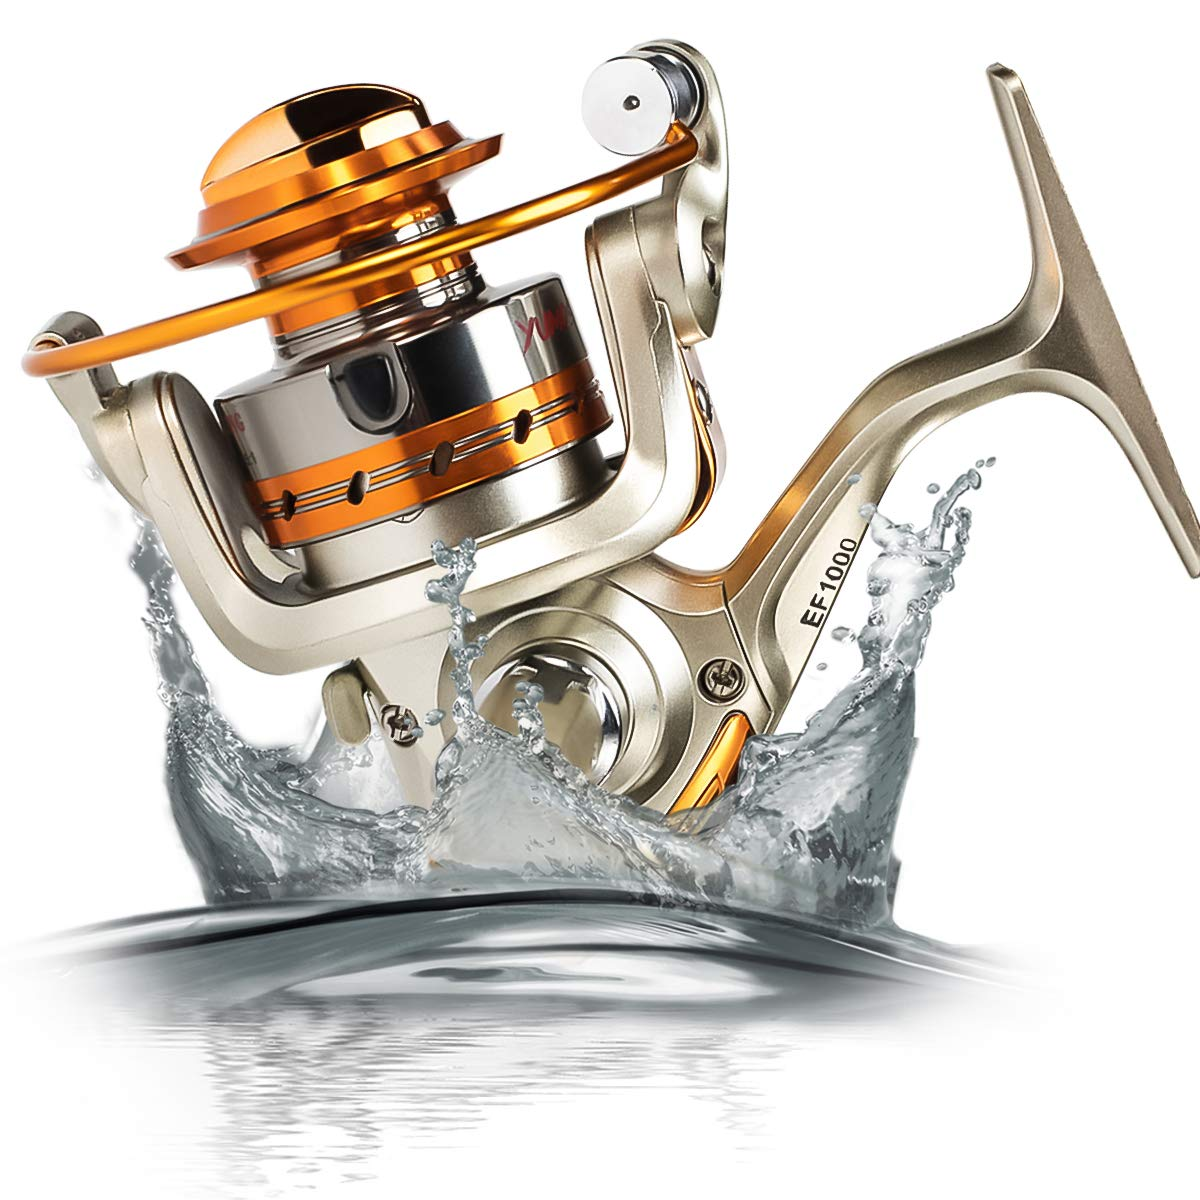 Amorly Rapid Spinning Fishing Reel with Left Right Interchangeable Wood Handle,12 Ball Bearings Spinning Reels for Freshwater Saltwater